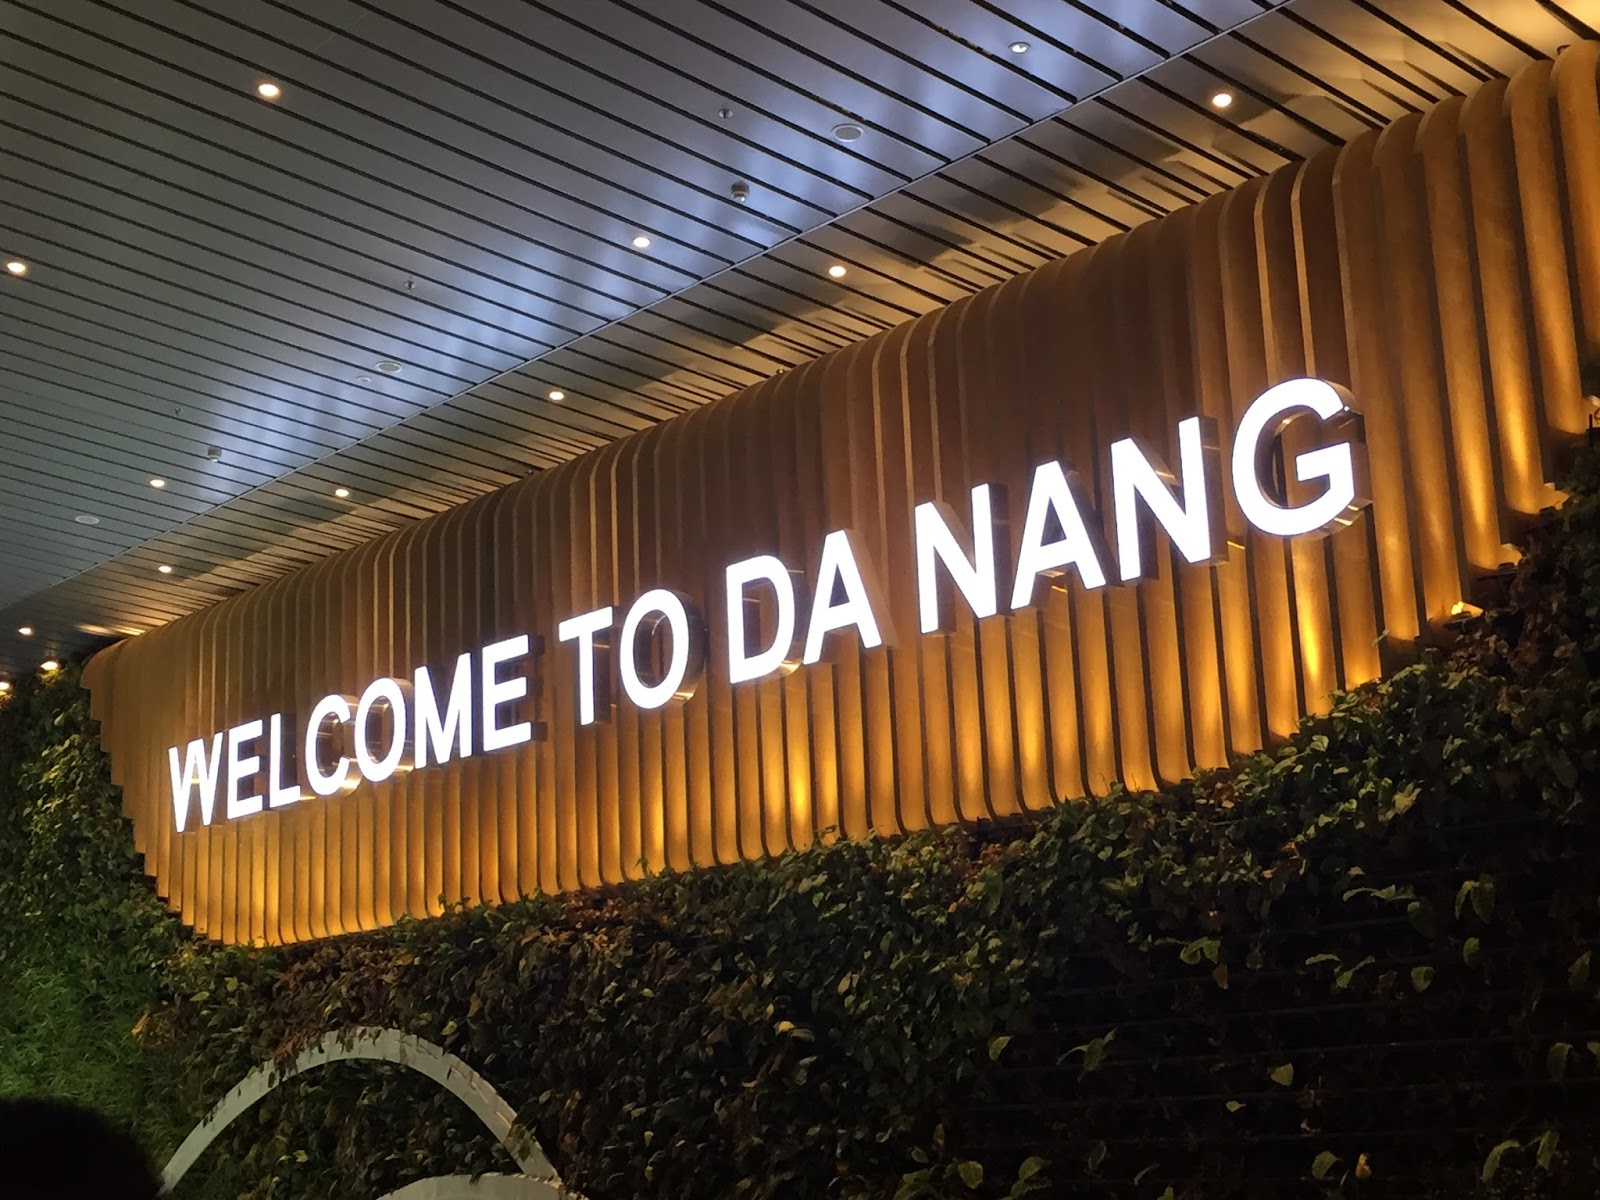 Da Nang International Airport_Adrienne nguyen_Invictus